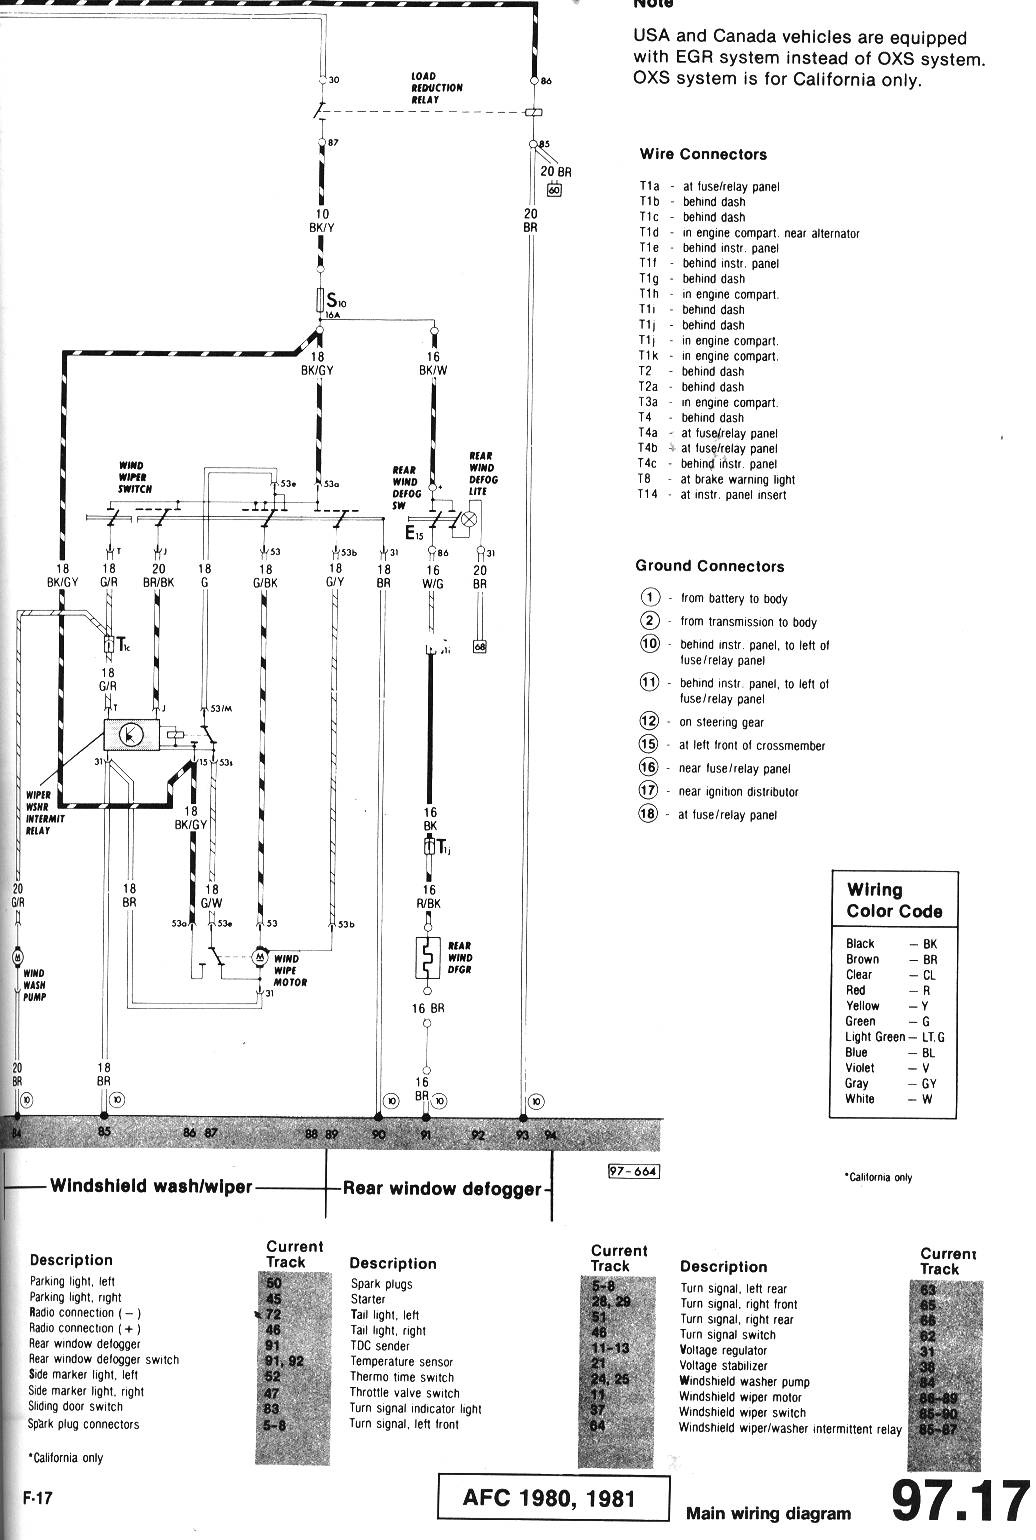 wiper motor wiring diagram - impremedia.net wexco wiper motor wiring diagram